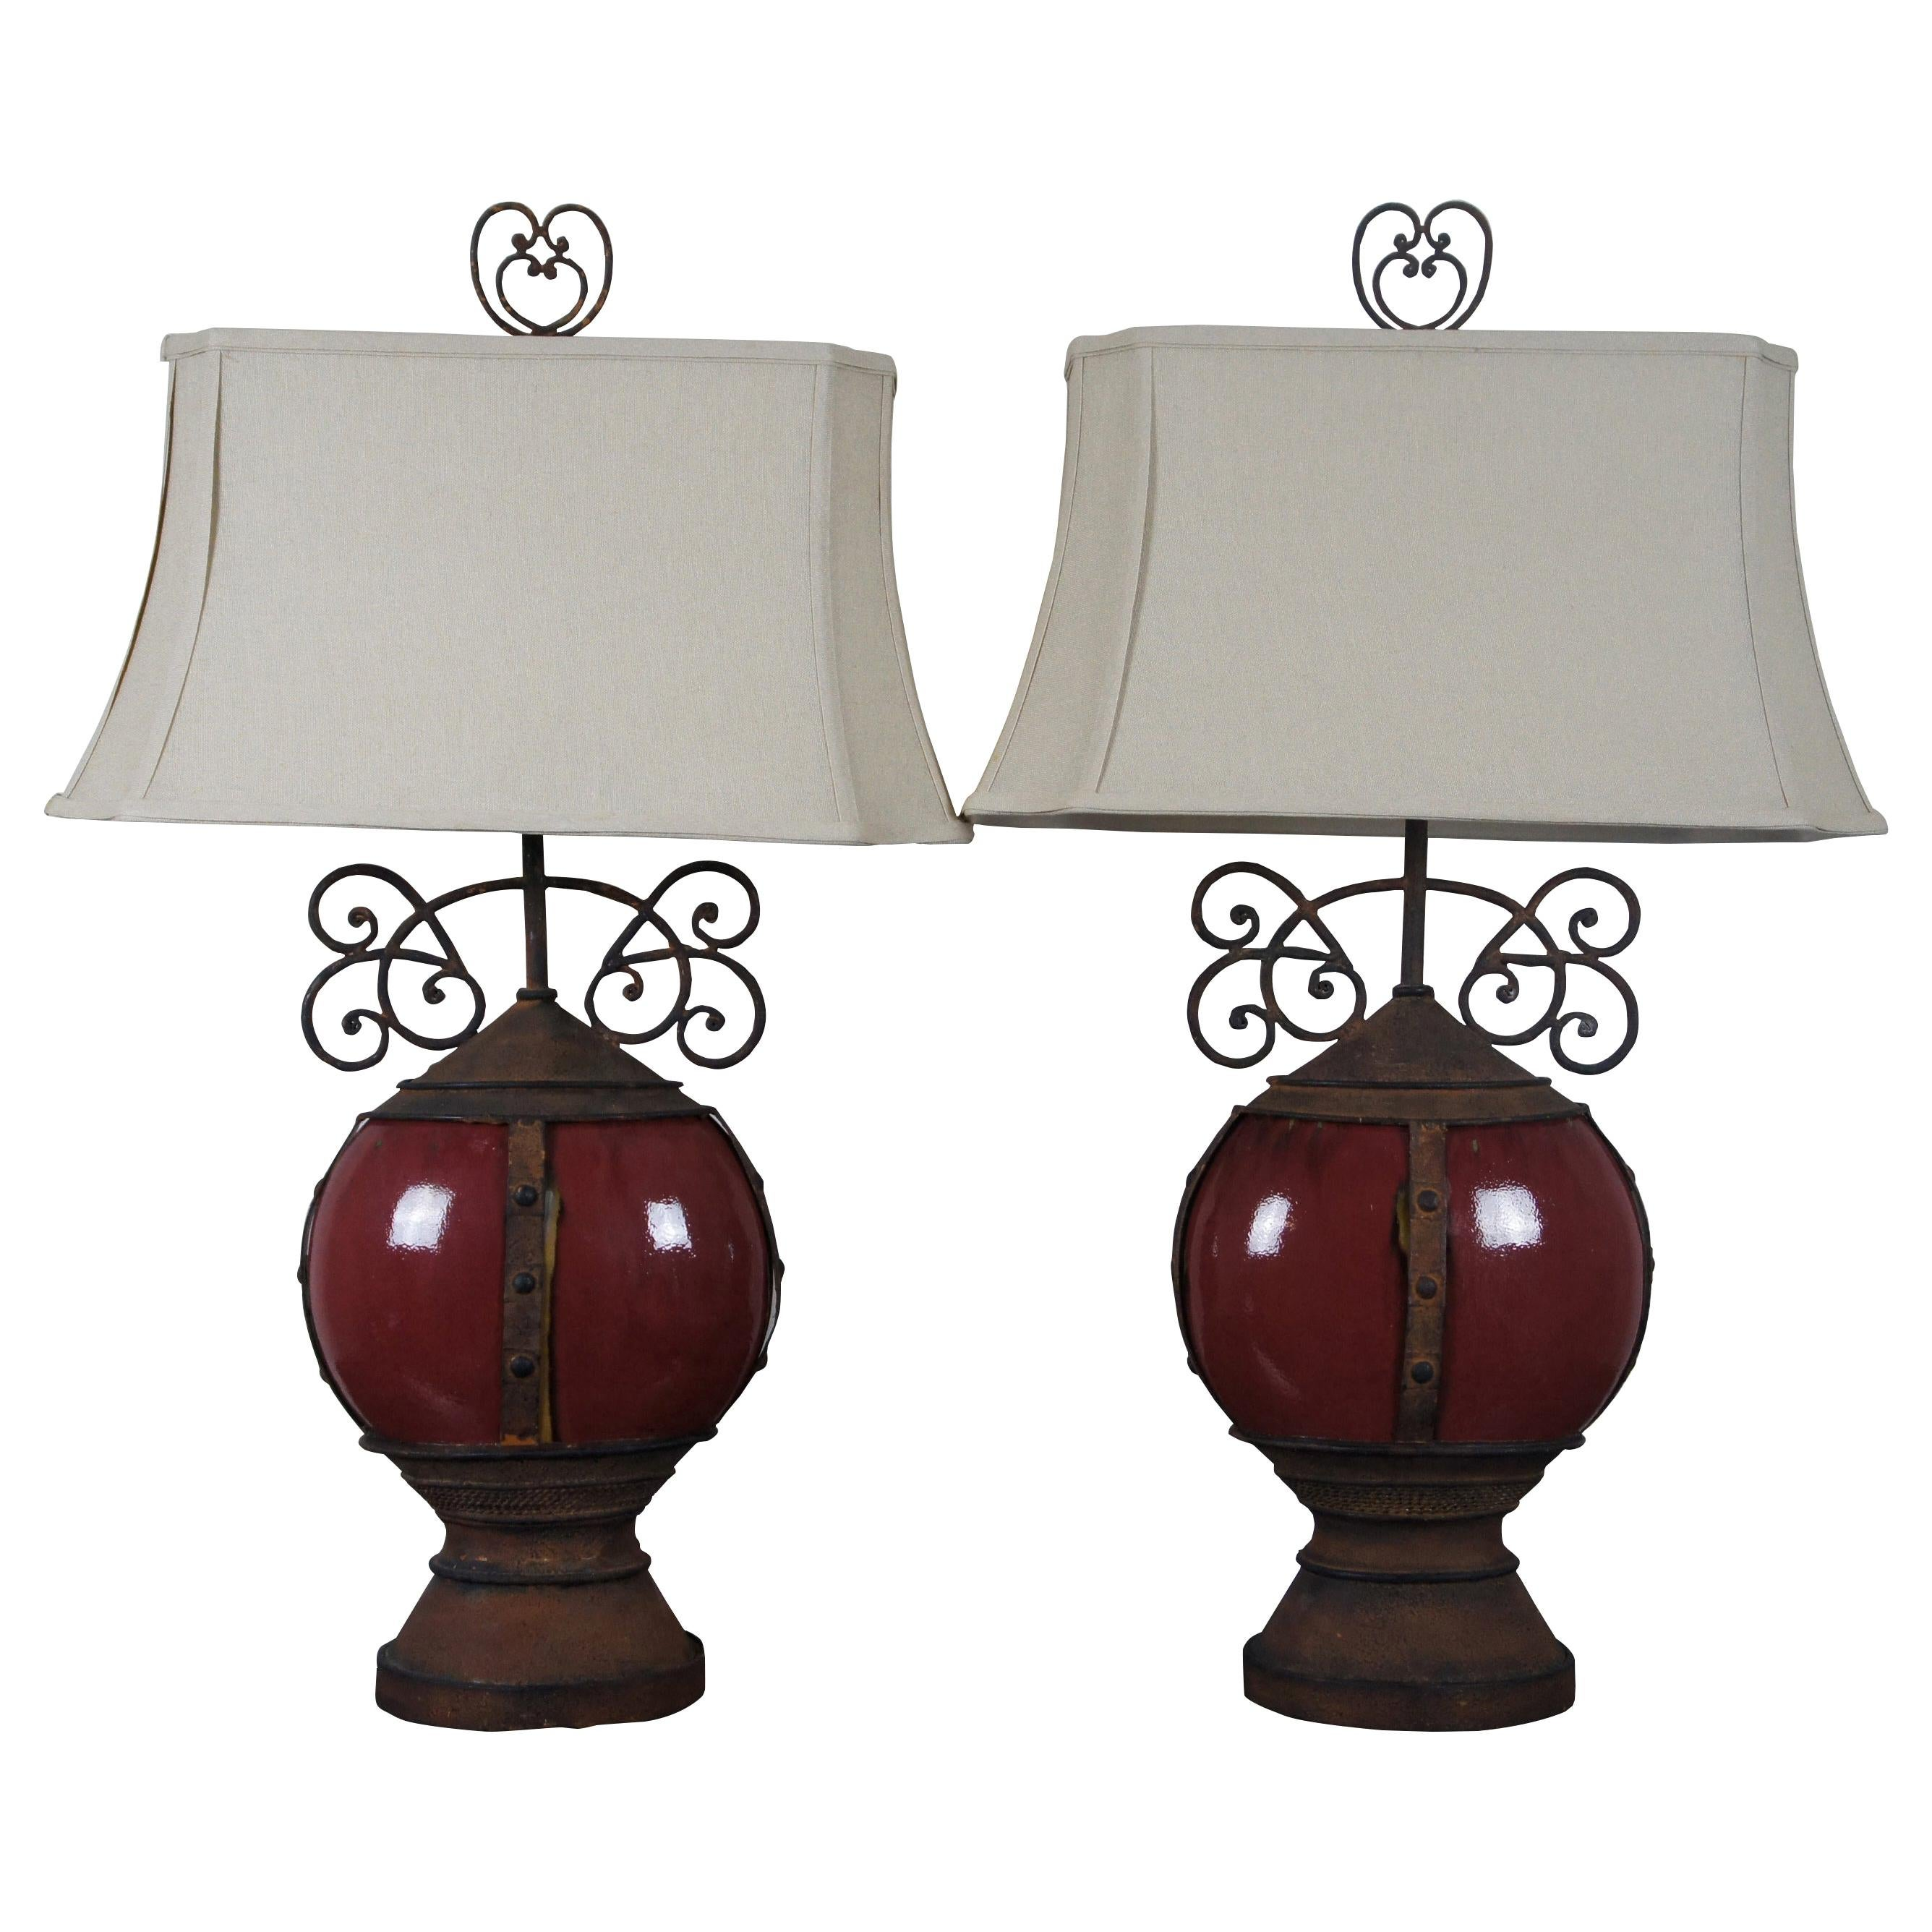 2 Southwestern Scrolled Wrought Iron Oxblood Red Ceramic Table Lamps Light